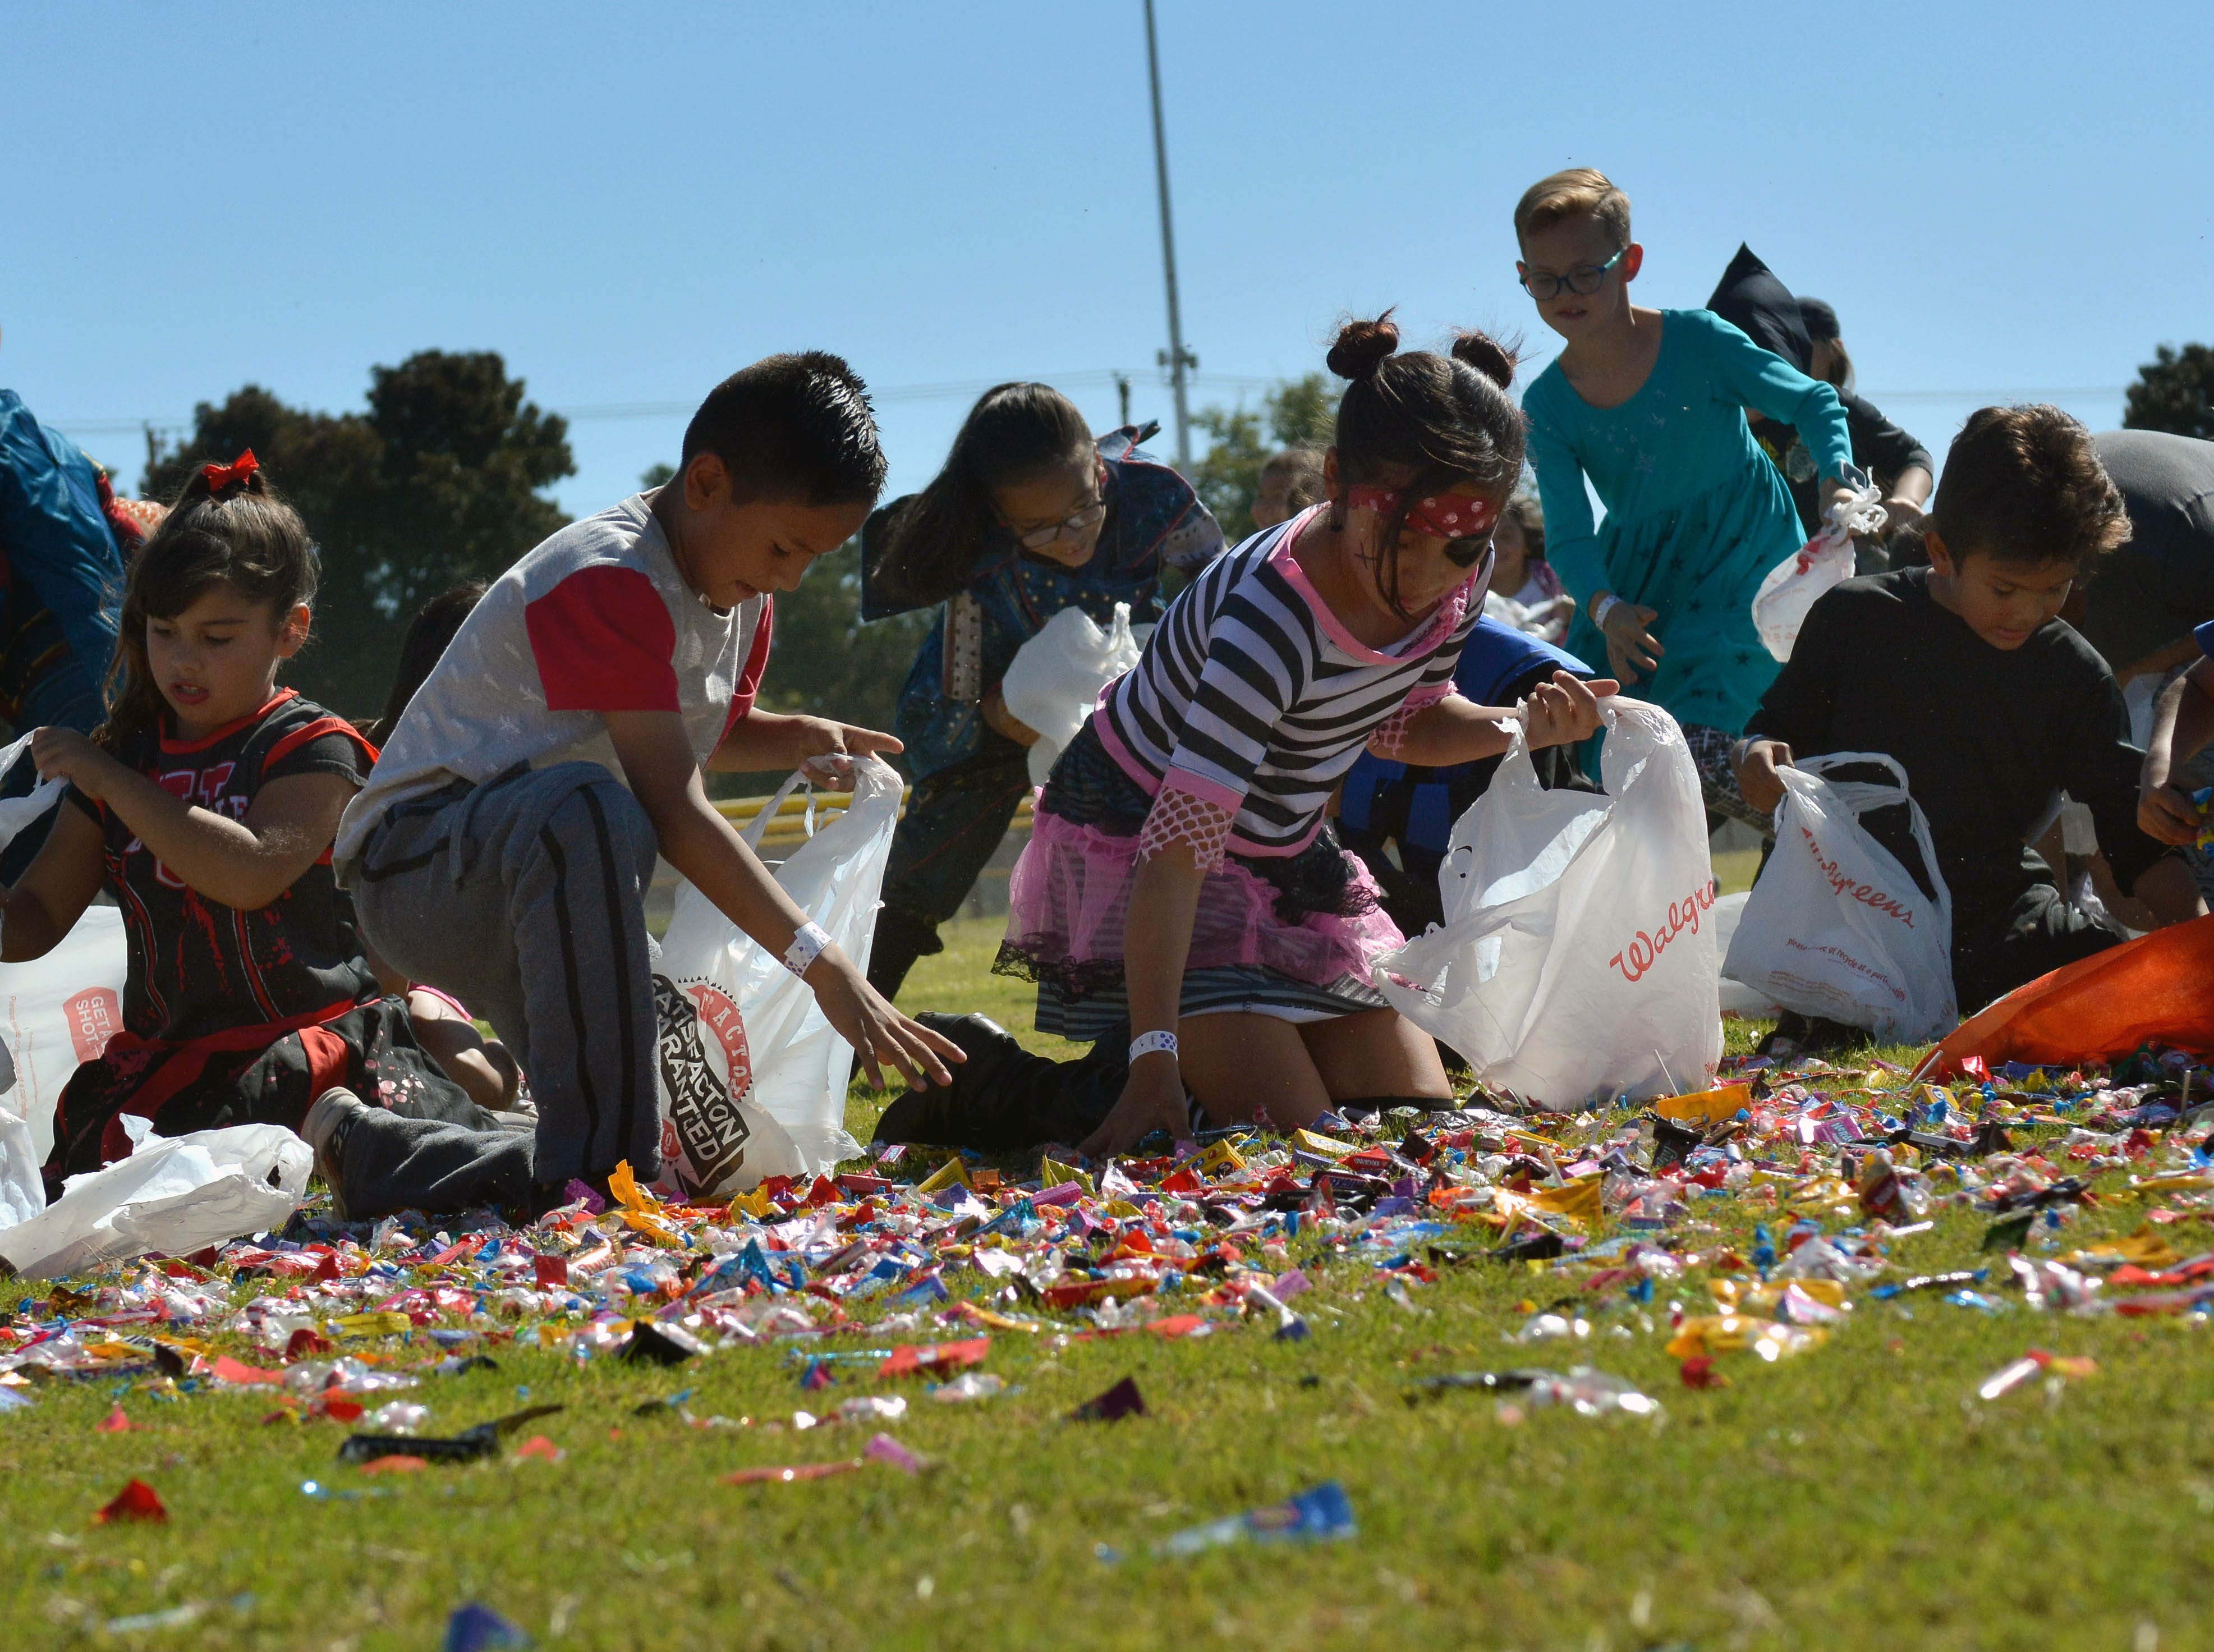 Candy for everyone during the 14th annual Great Pumpkin Candy Drop, held Sunday, Oct, 28 at Maag Park.